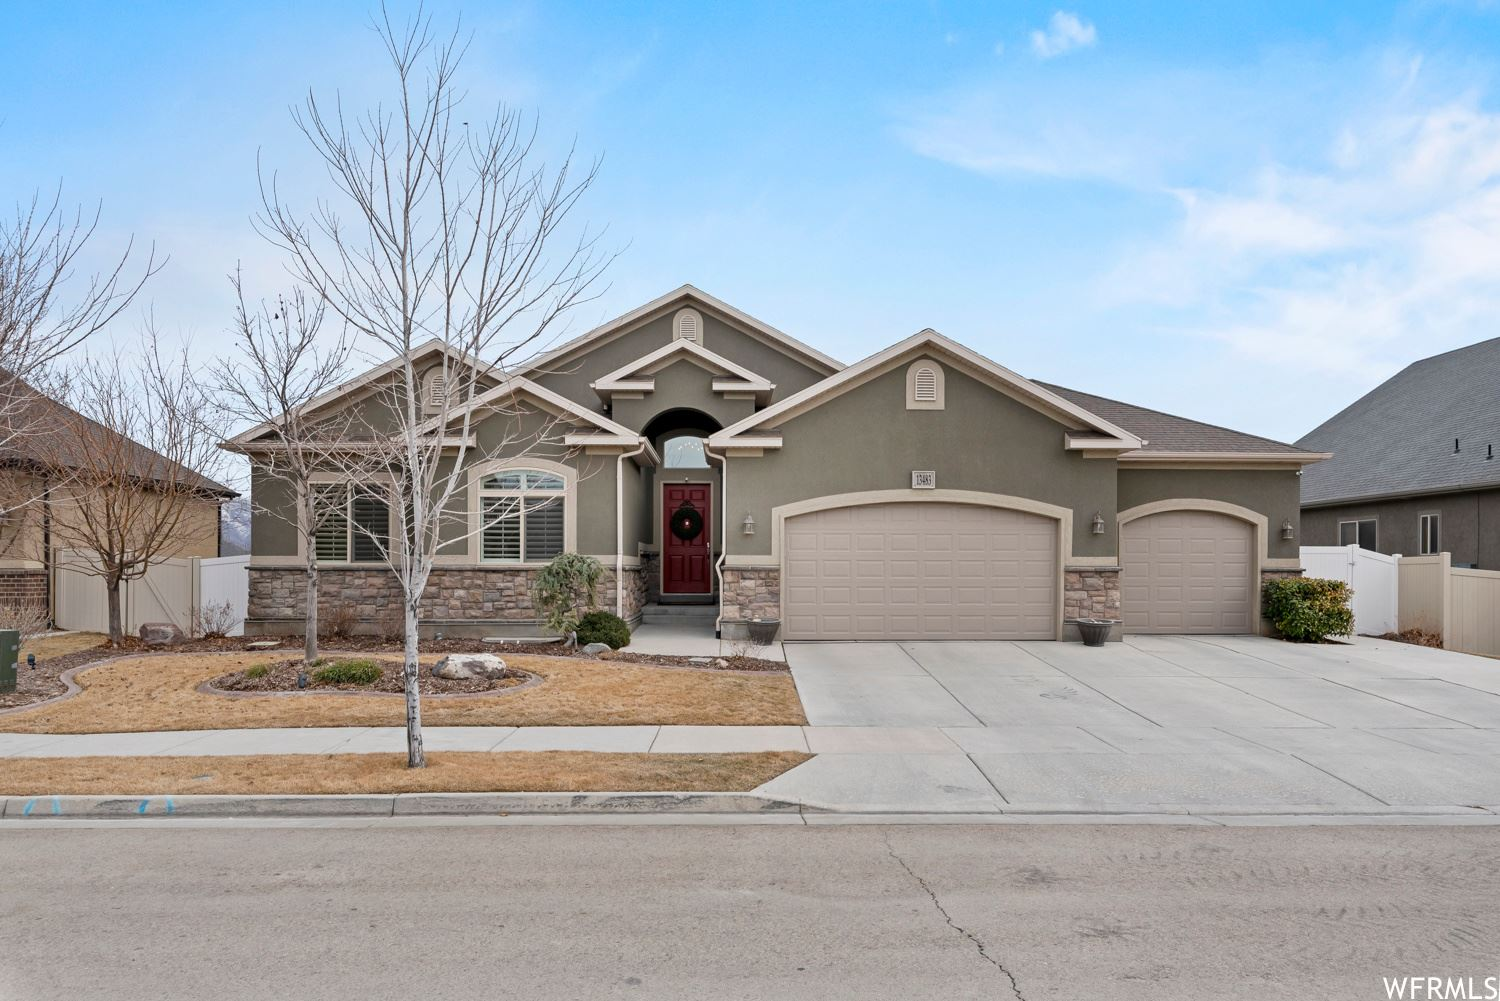 Photo of 13483 S CHAMONIX WAY, Riverton, UT 84065 (MLS # 1724198)